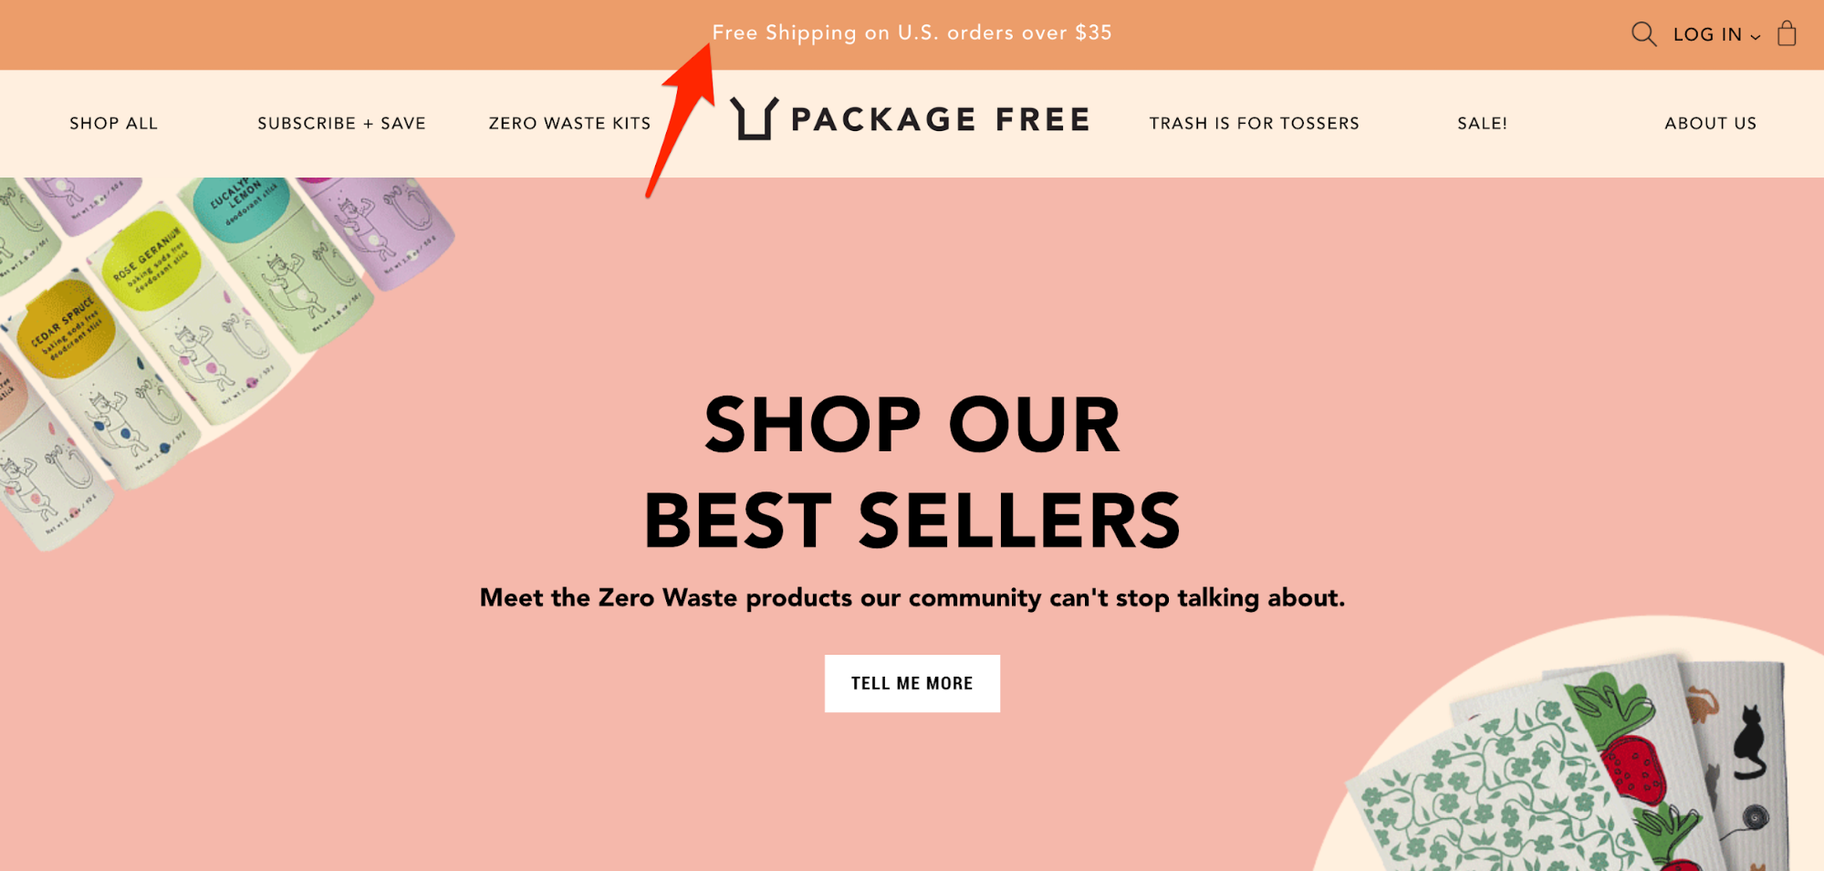 Ecommerce Free Shipping: Package Free